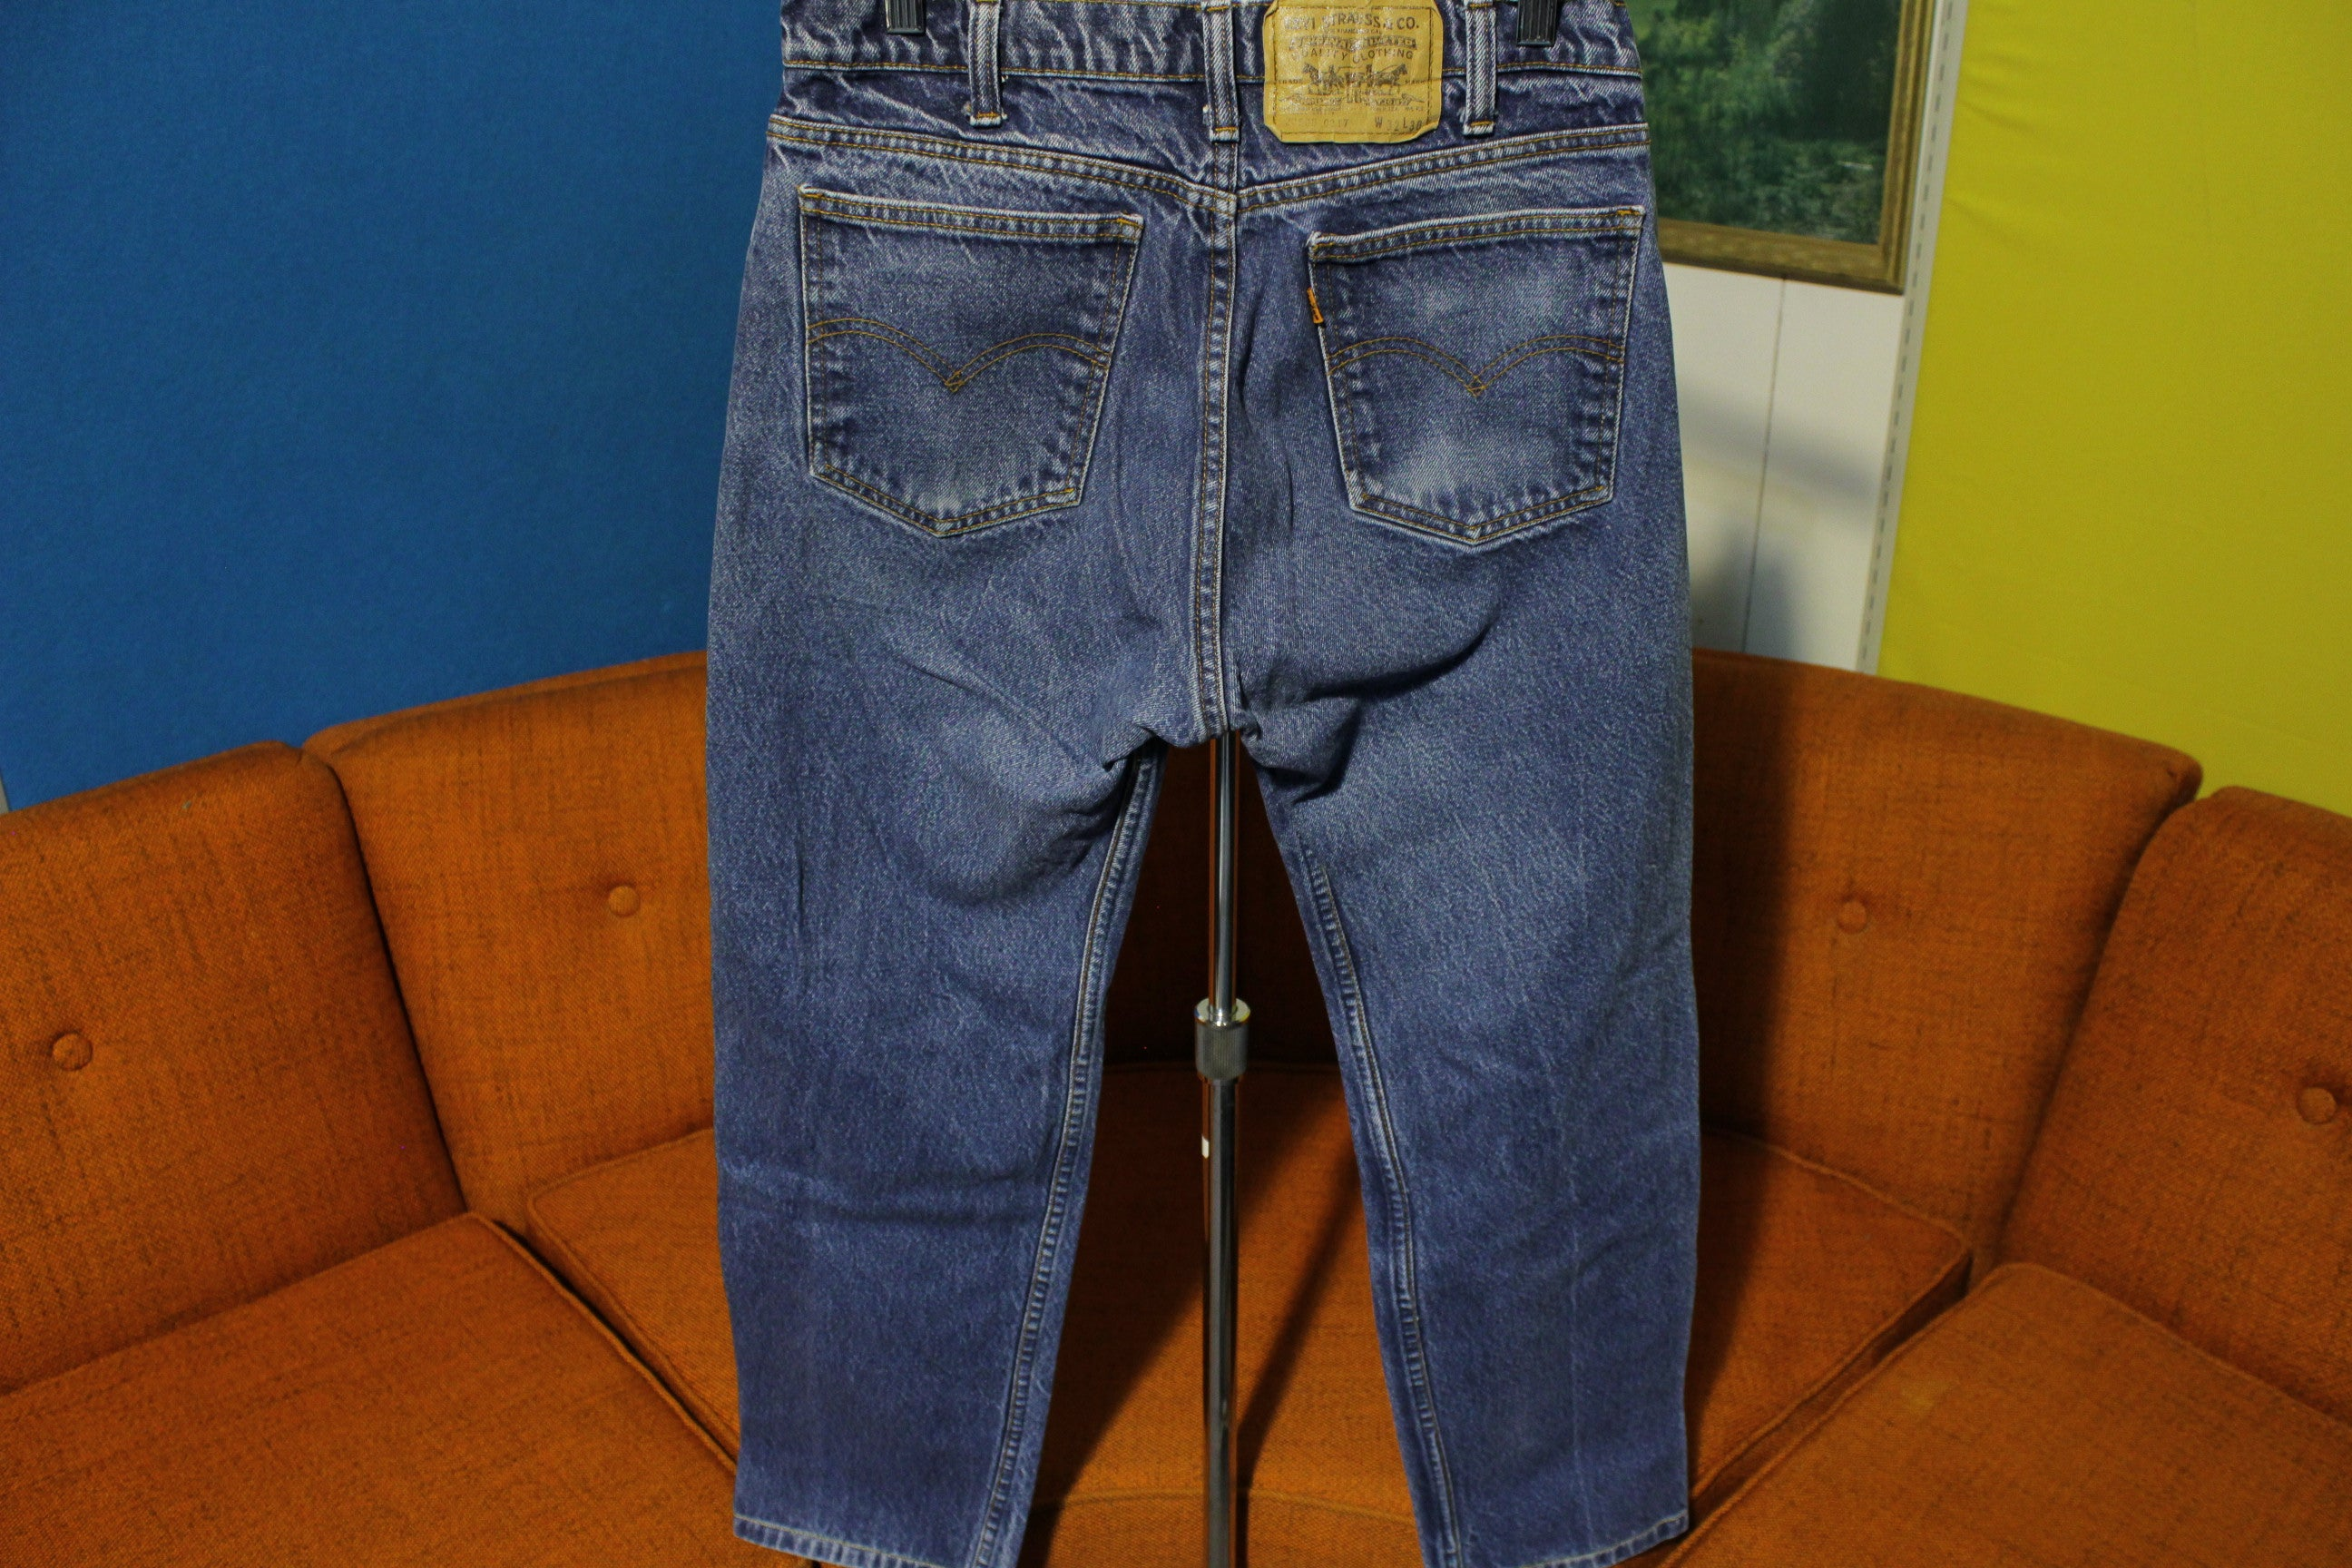 Levis Orange Tab 20505 0217 Vintage 1980's Jeans Made in USA Men's 29 x 28